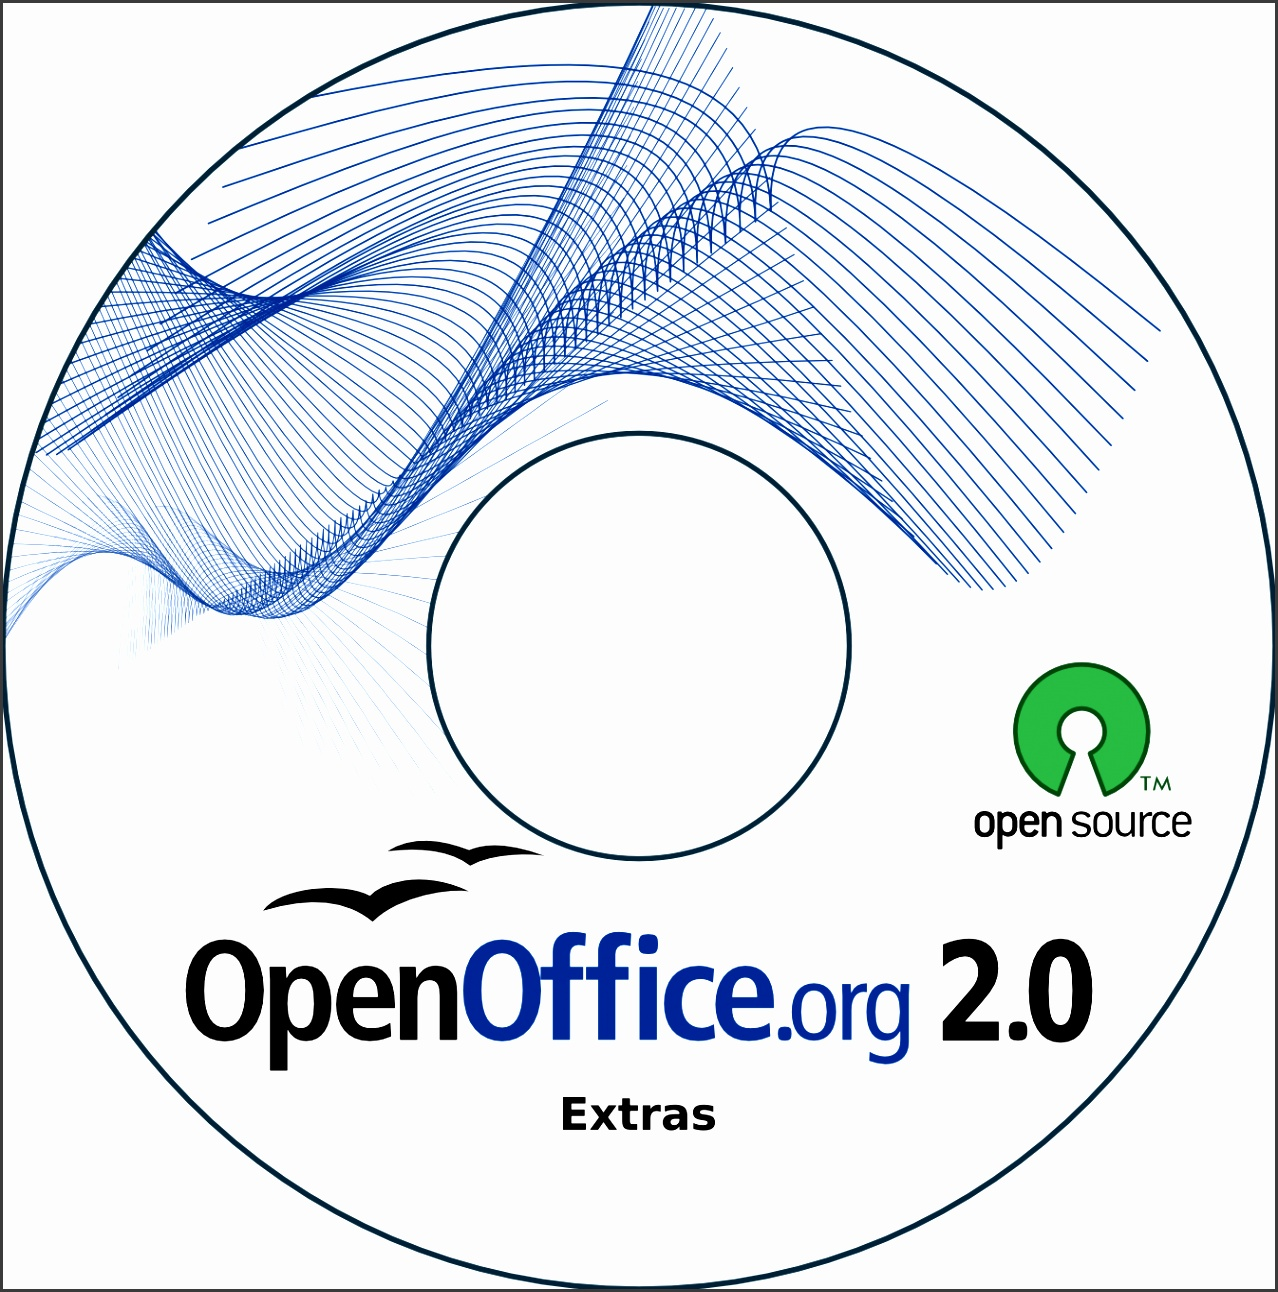 Openoffice cd art previous versions source vector graphics svg description pronofoot35fo Image collections